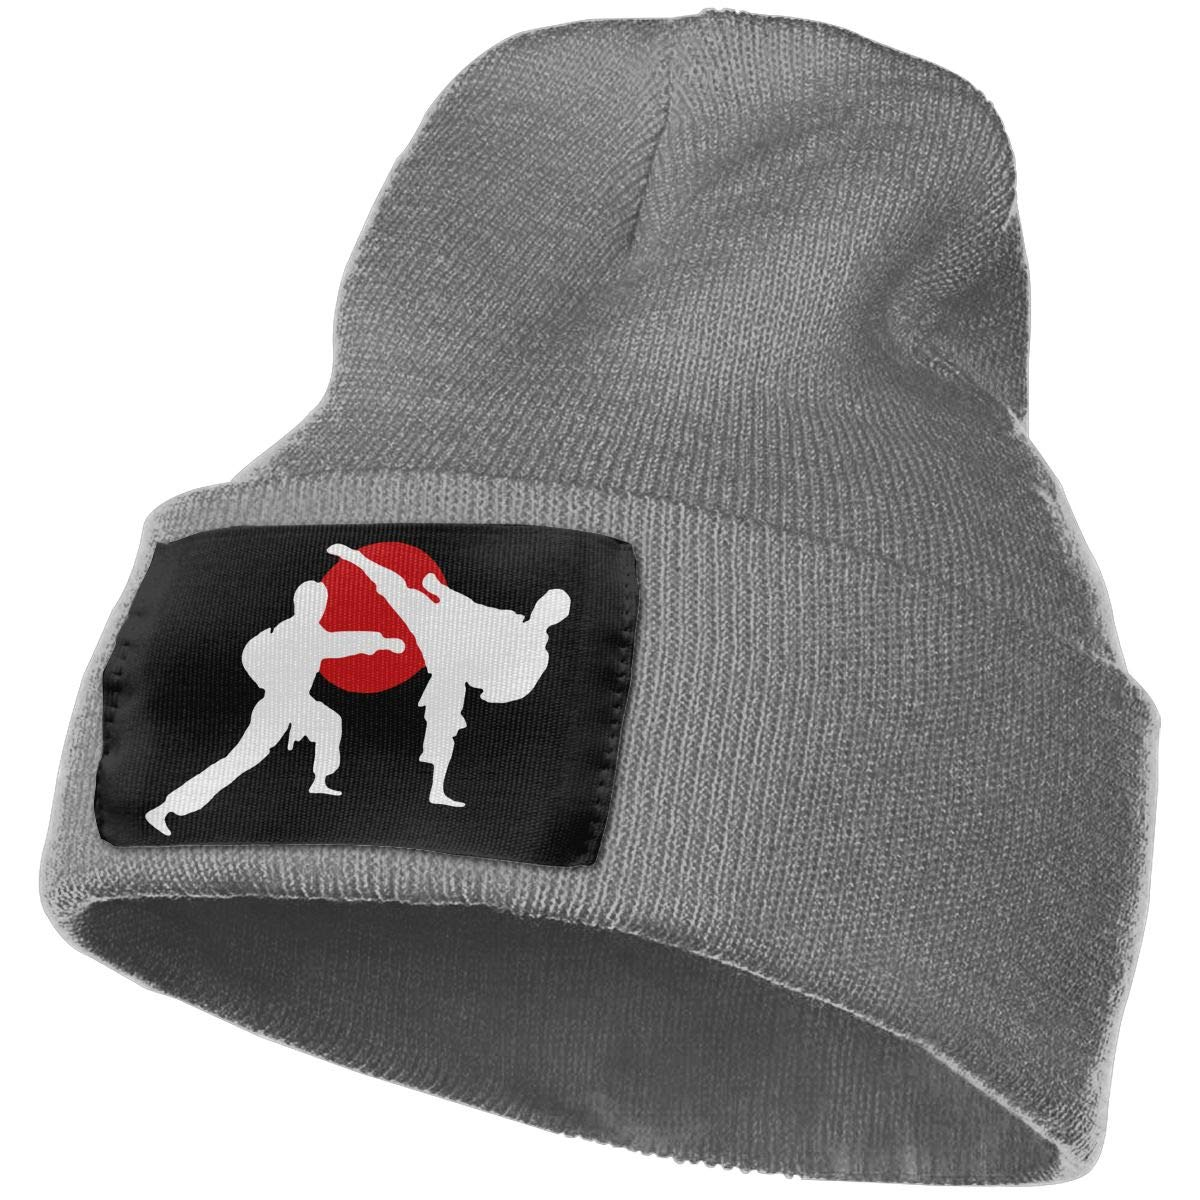 Two Karate Fighter Soft Skull Beanie WHOO93@Y Mens Womens 100/% Acrylic Knitting Hat Cap